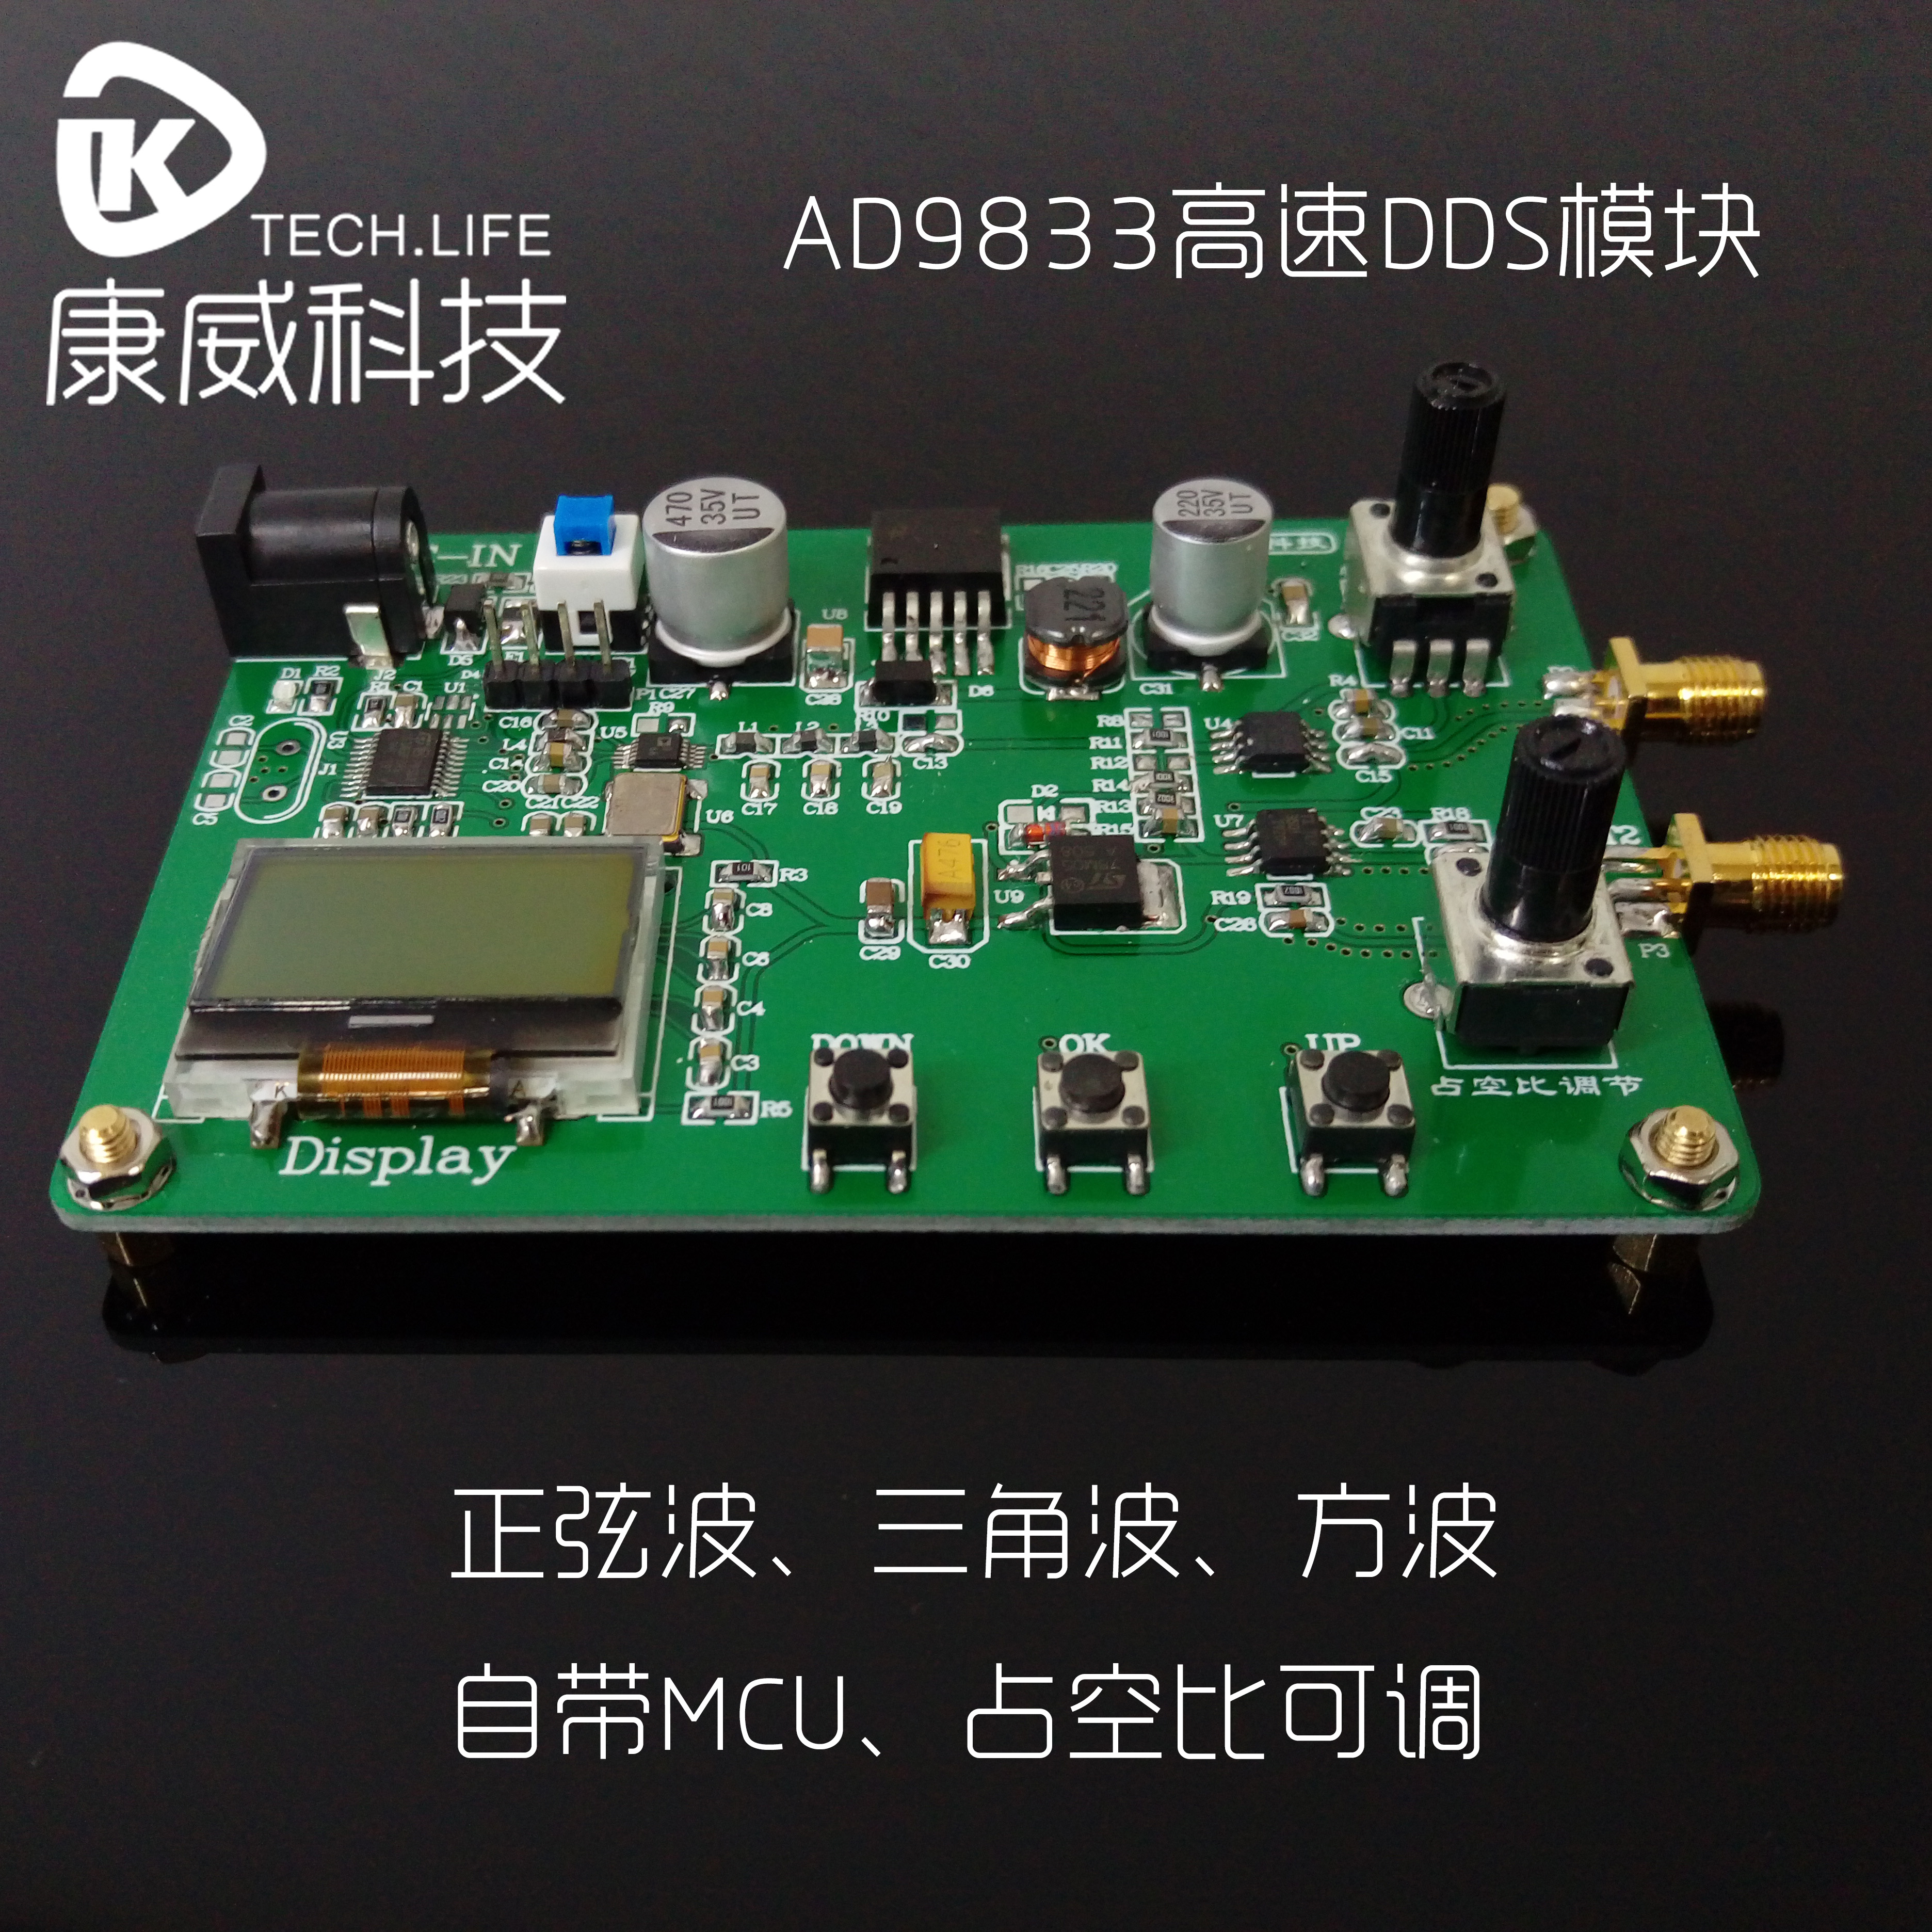 AD9833 high speed DDS module with singlechip gain adjustable speed square wave duty cycle adjustable